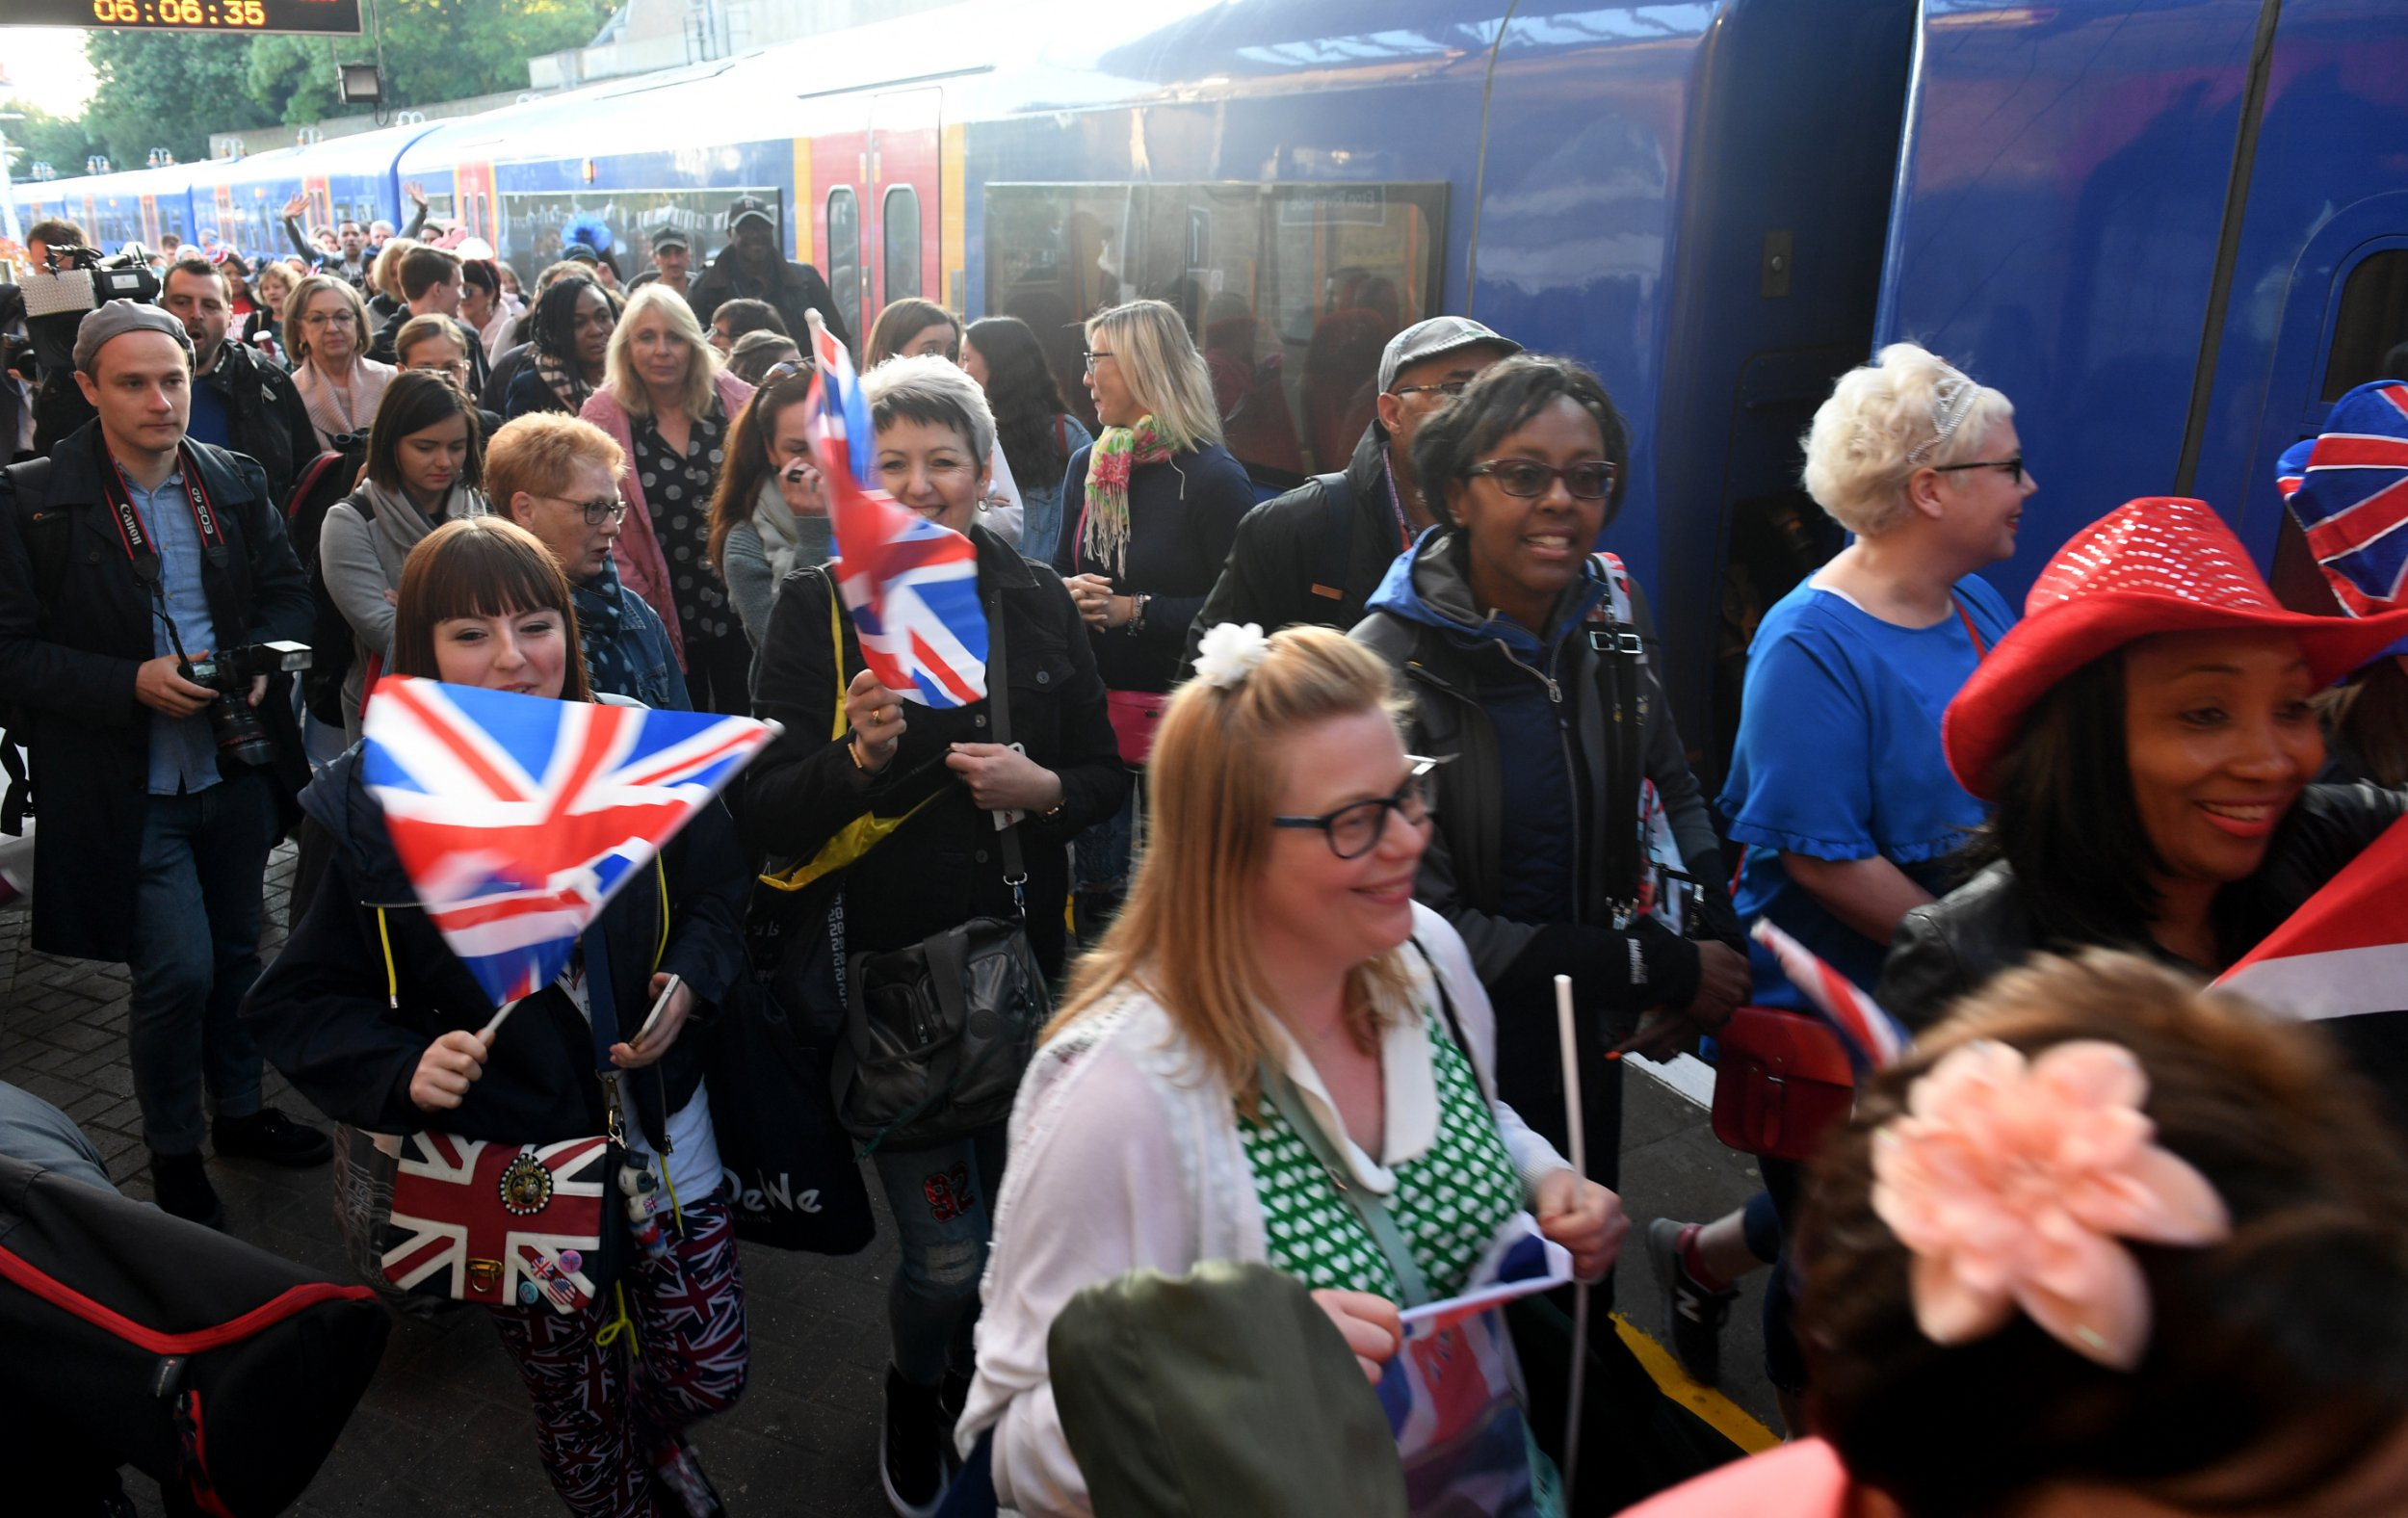 Thousands of people are on the train to Windsor for the royal wedding